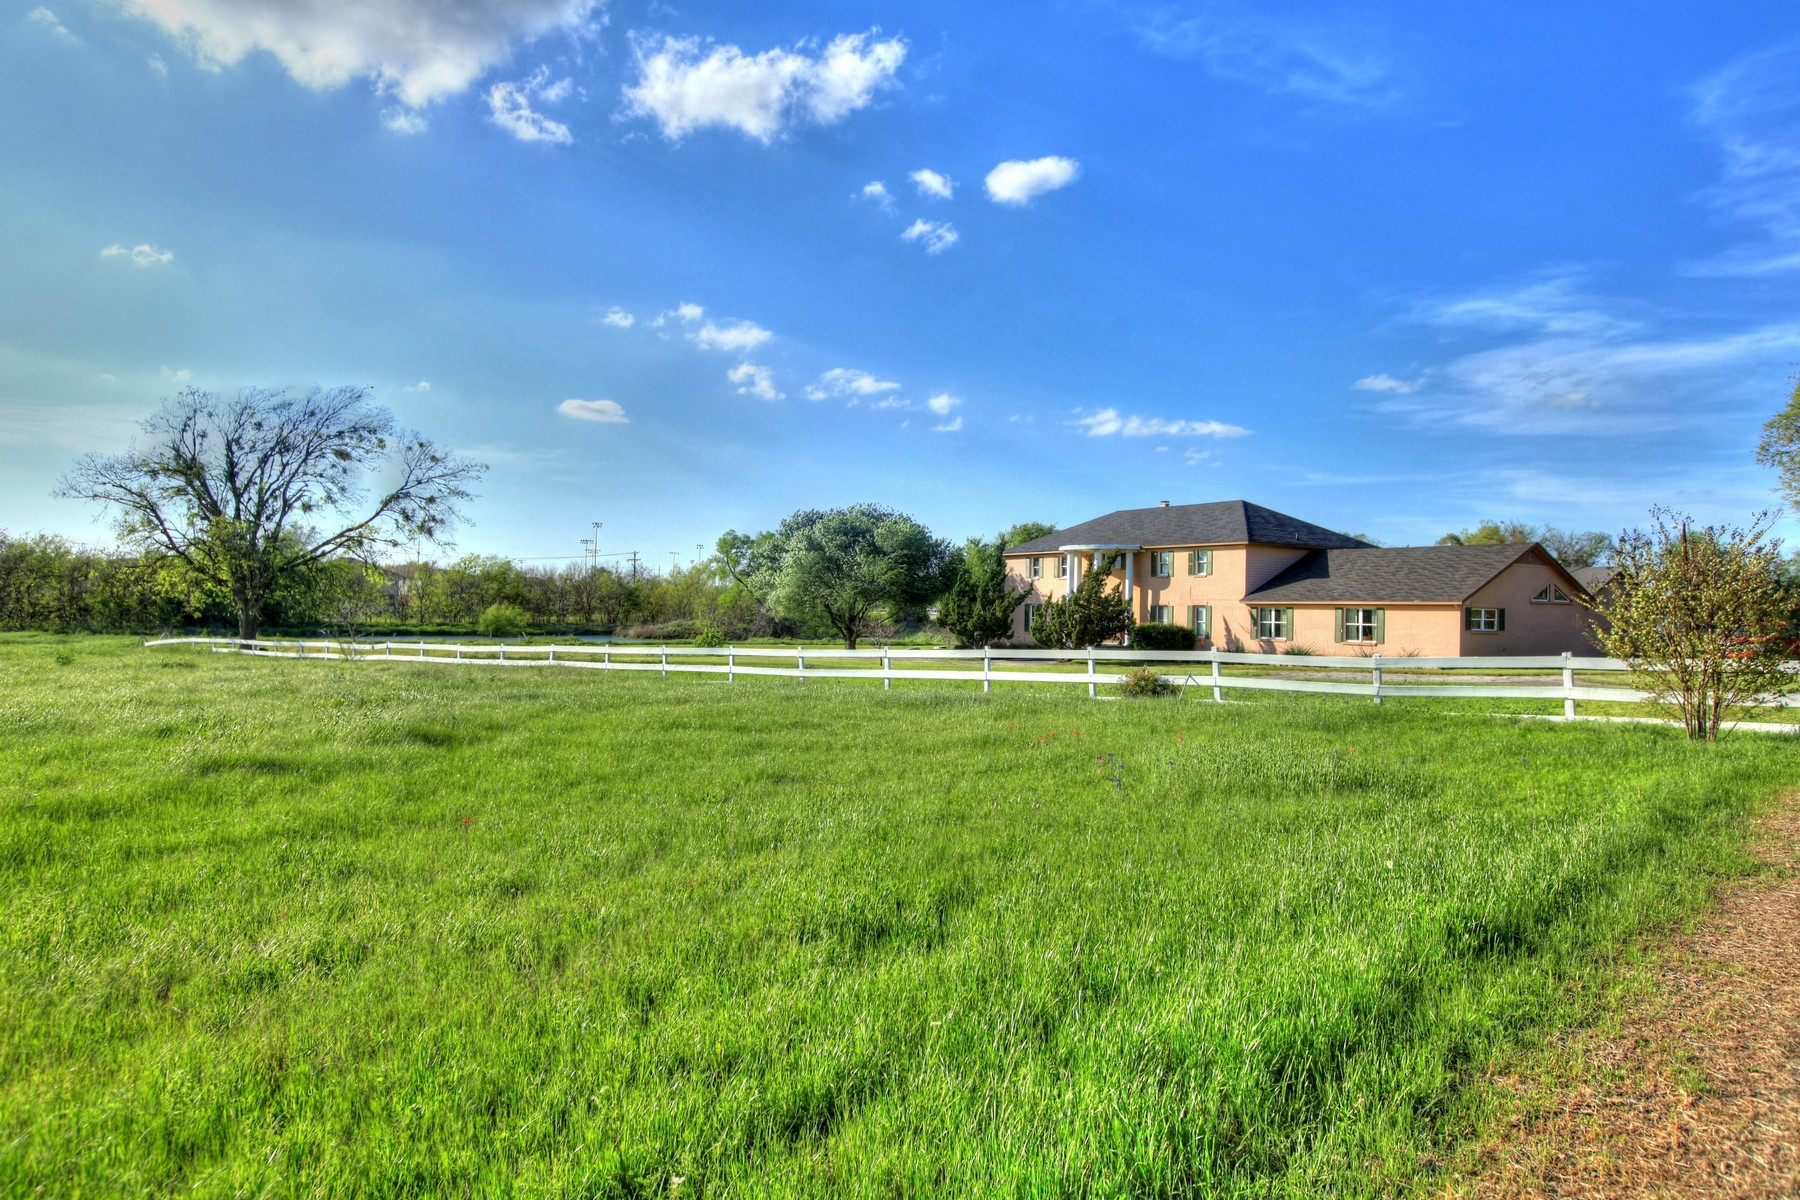 Additional photo for property listing at Amazing Round Rock property on 10 acres 4500 Tiffany Nicole St Round Rock, Texas 78665 Estados Unidos